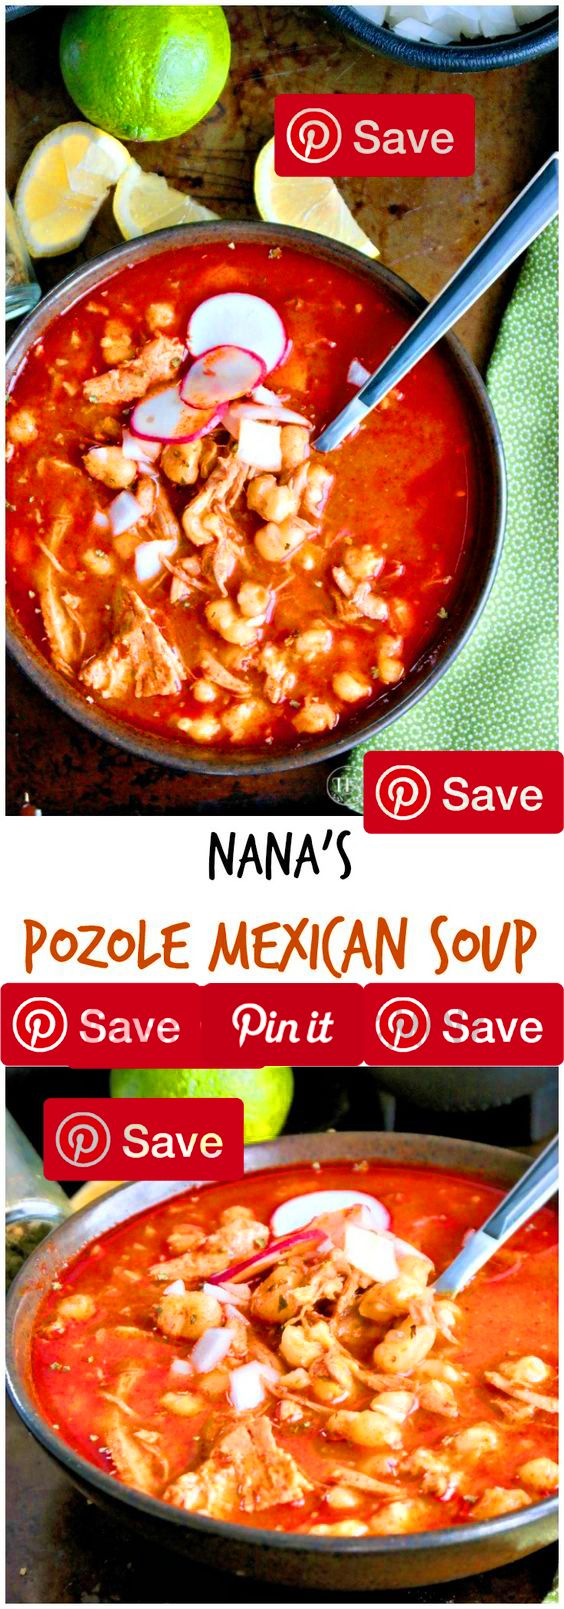 Nanas Pozole Mexican Soup 5.5 hrs to make serves 8-10 Tried and true family recipe from Nana herself! This Pozole Mexican Soup with beef and hominy is a family favorite dish often served during Pickeds Ingredients Produce 2 (29 ounce) white hominy white 1 Bay leaf 1 Cabbage 1 tbsp Garlic 1 Lemon or lime wedges 1 Mexican oregano 1 Onions 1 Radishes Condiments 1 (28 ounce) can Red chile sauce Baking & Spices 1 Garnish - toppings 1 tbsp Red chili powder 1 tbsp Salt Nuts & See